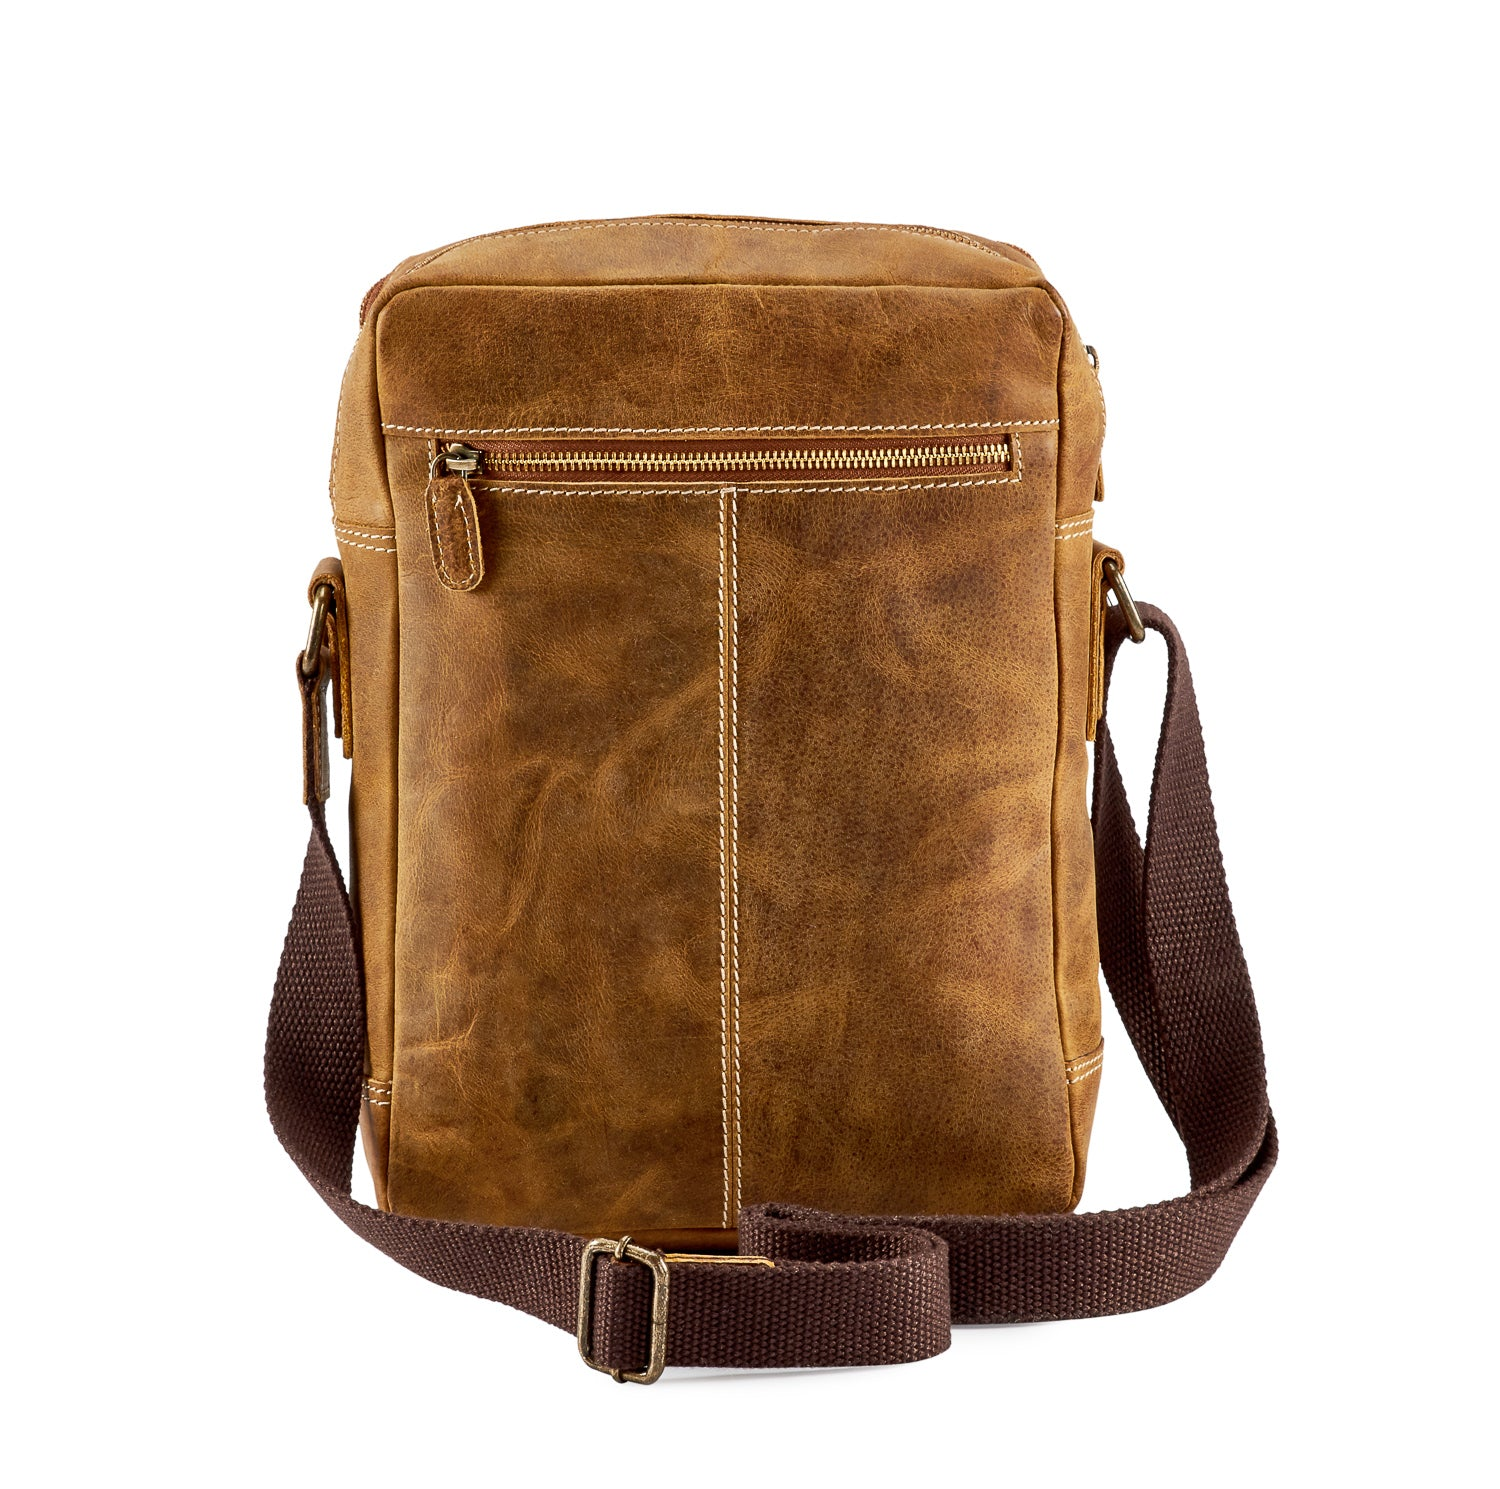 Venator Distressed Leather Portrait Messenger Bag #MB4972